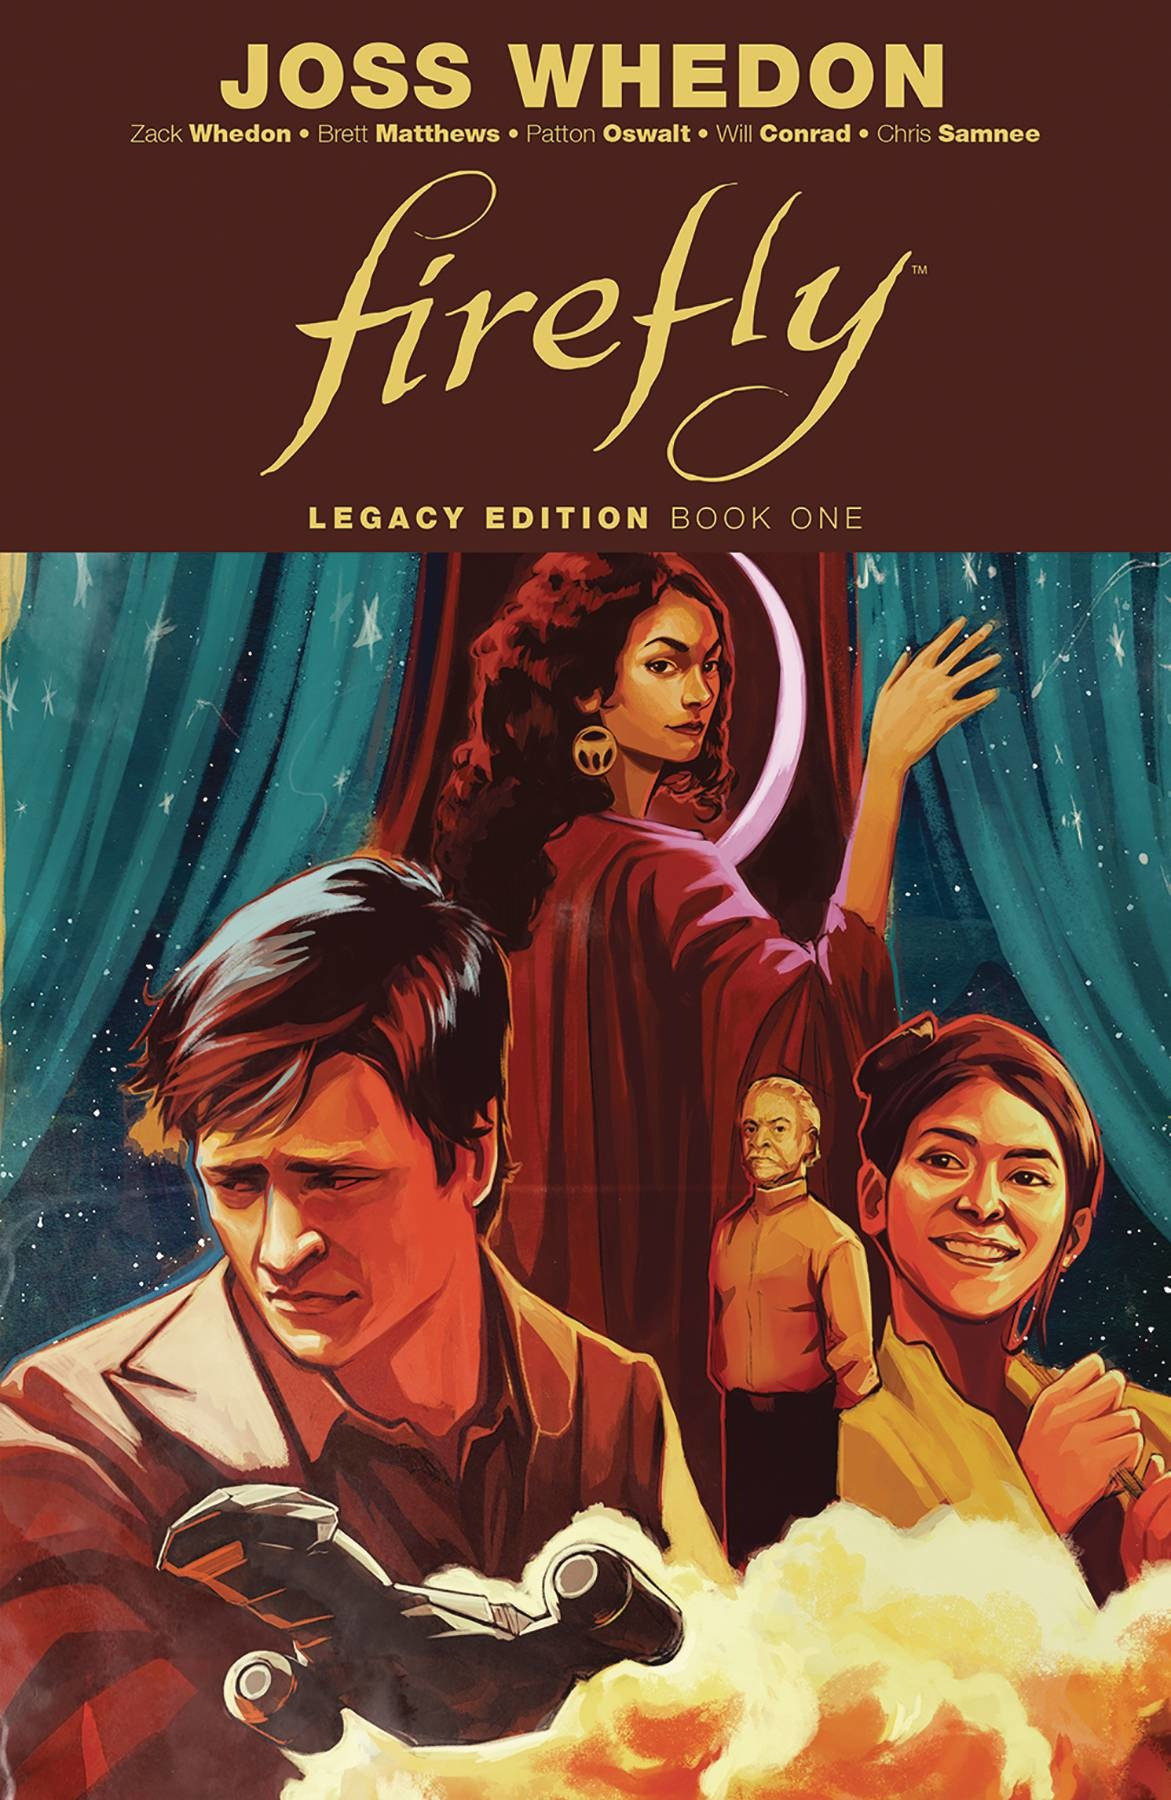 Firefly Legacy Edition Book 1